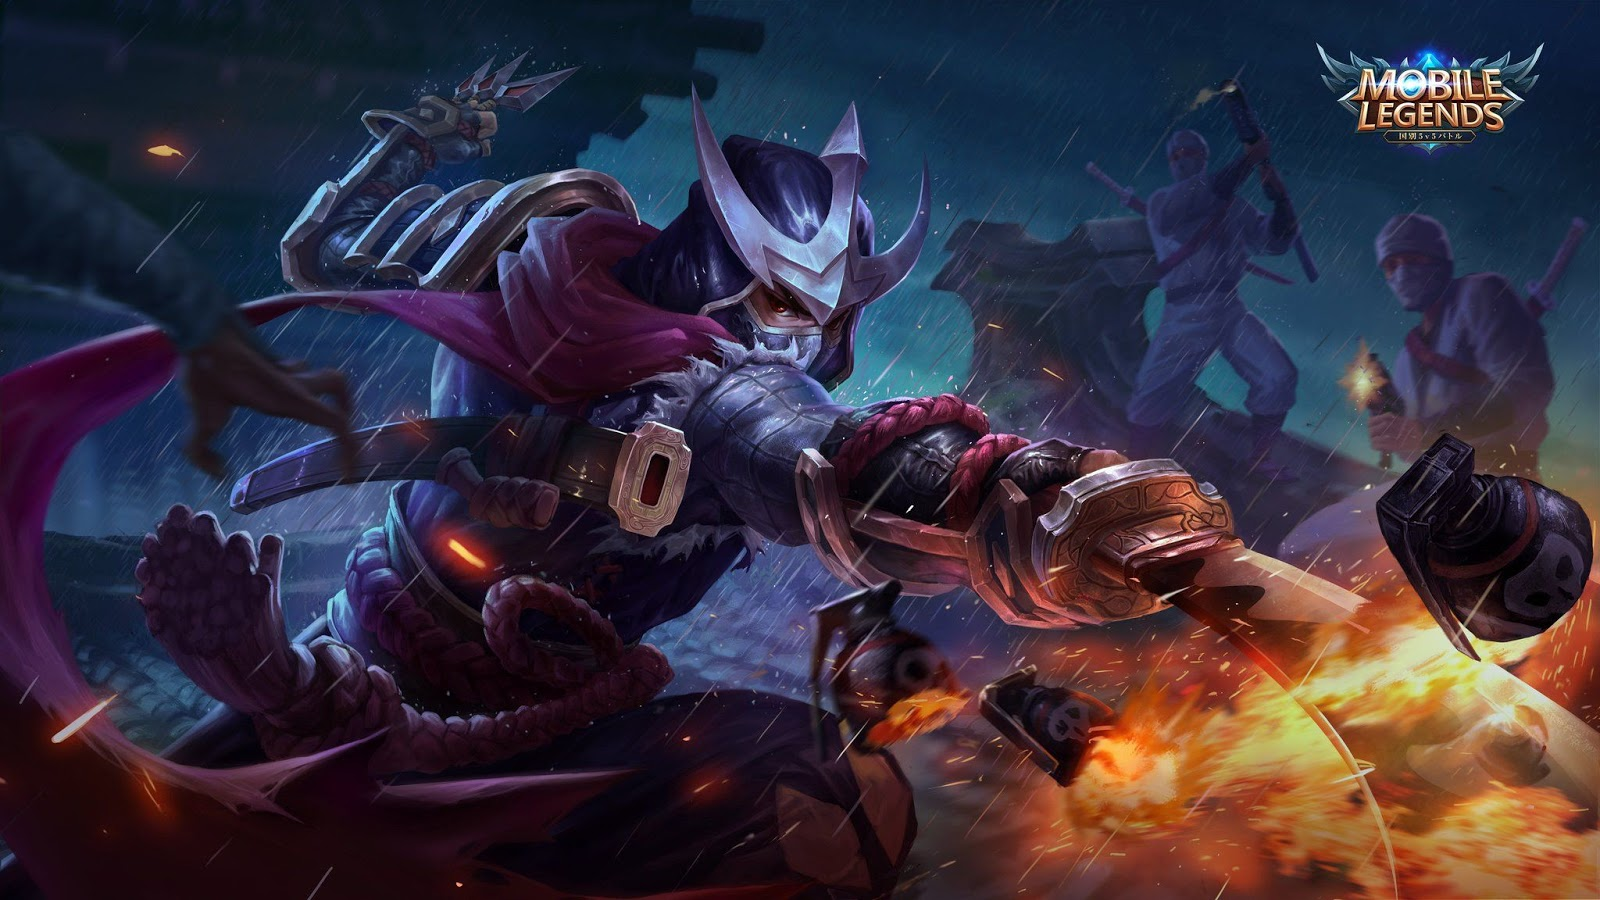 Gambar Mantab Jiwa 60 Wallpaper Hd Mobile Legends Terbaru